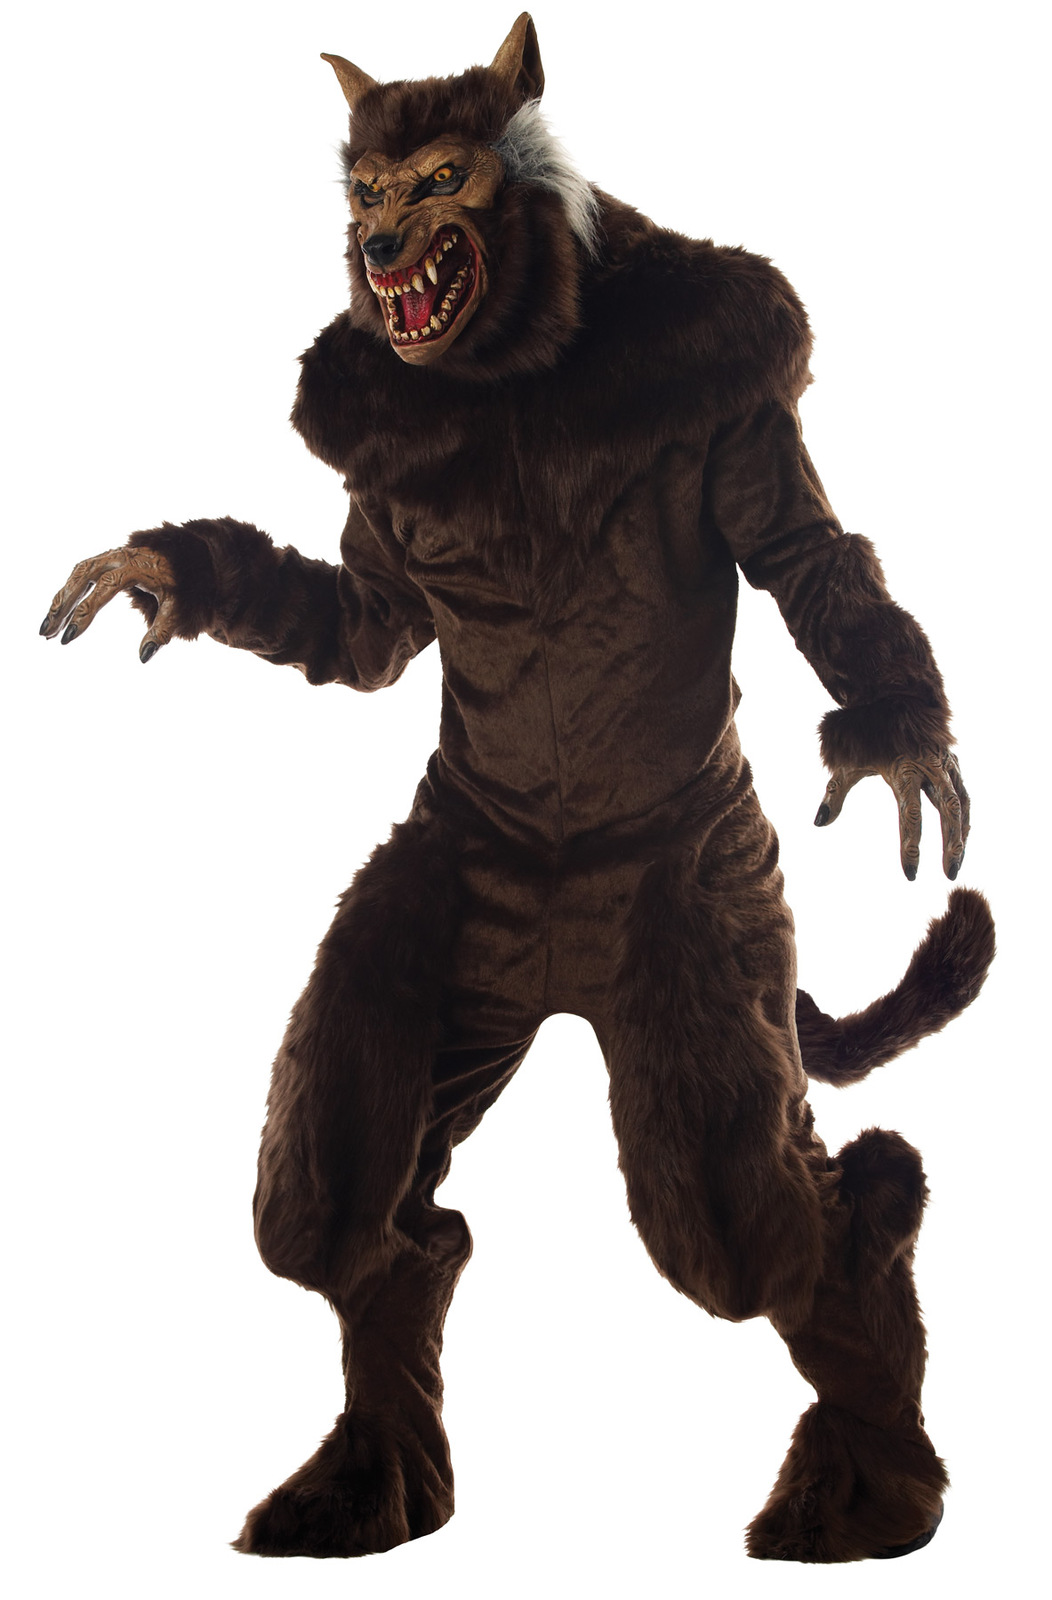 Deluxe Werewolf Adult Costume Monster Beast Bestseller Scary MR148106 CHEAP